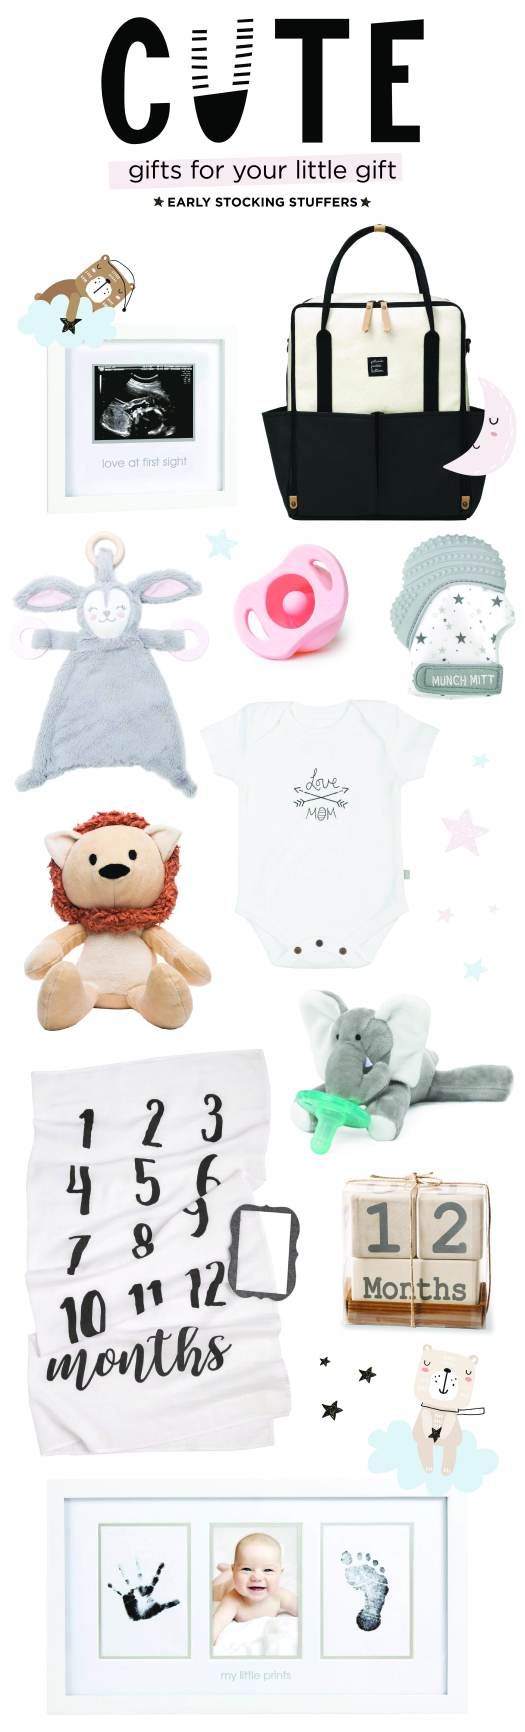 MH BLOG Baby Gifts v2